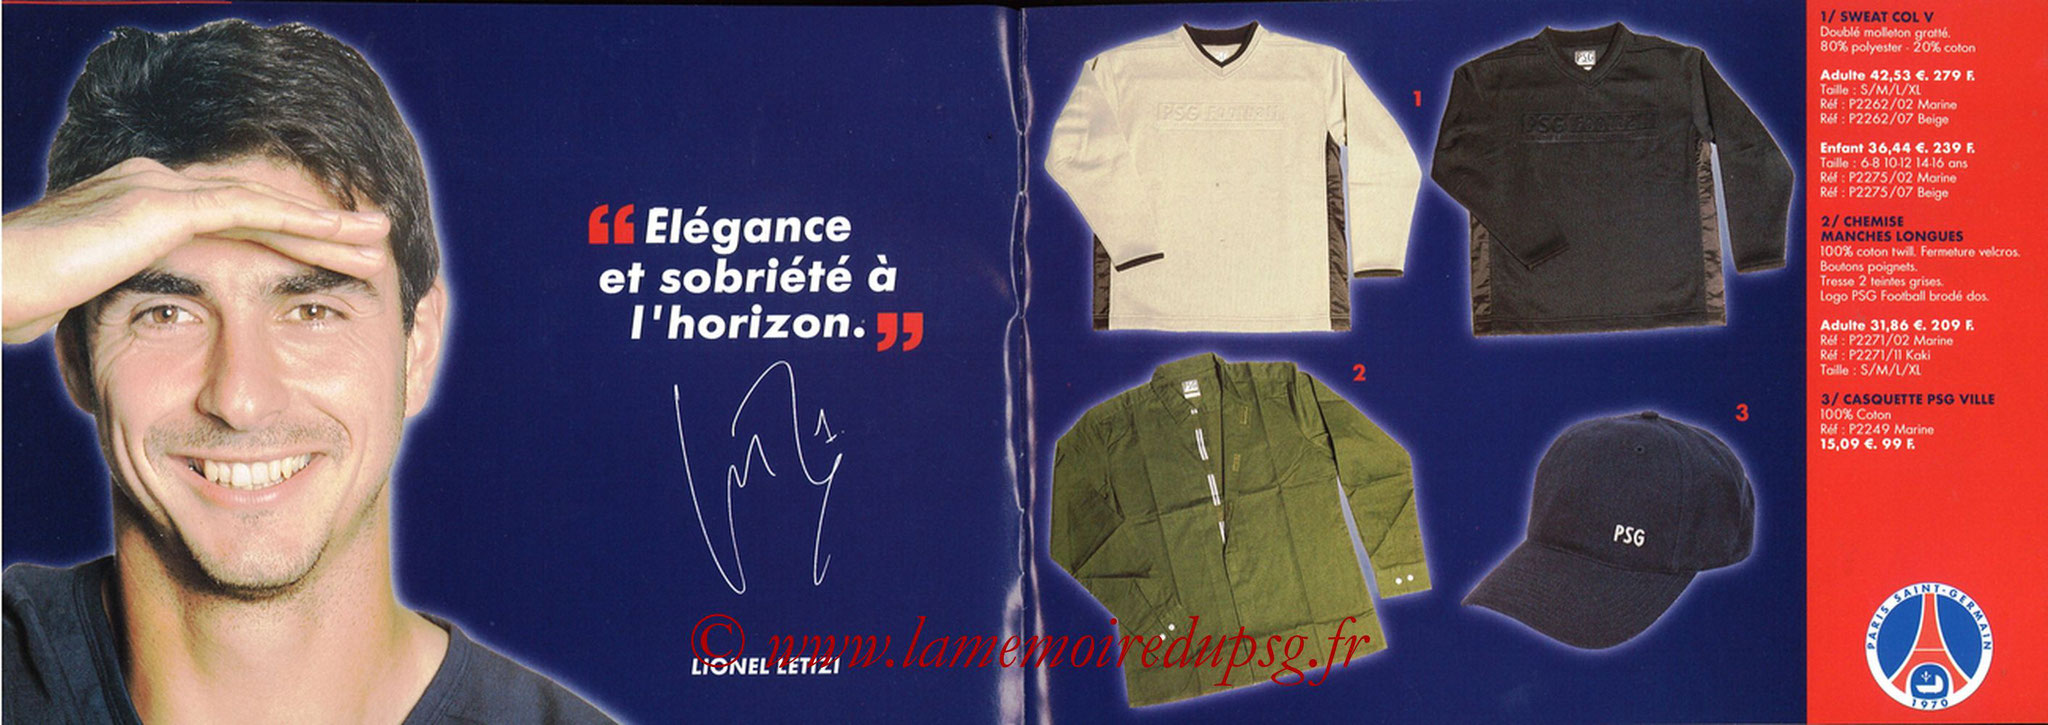 Catalogue PSG - 2001-02 - Noêl - Pages 06 et 07